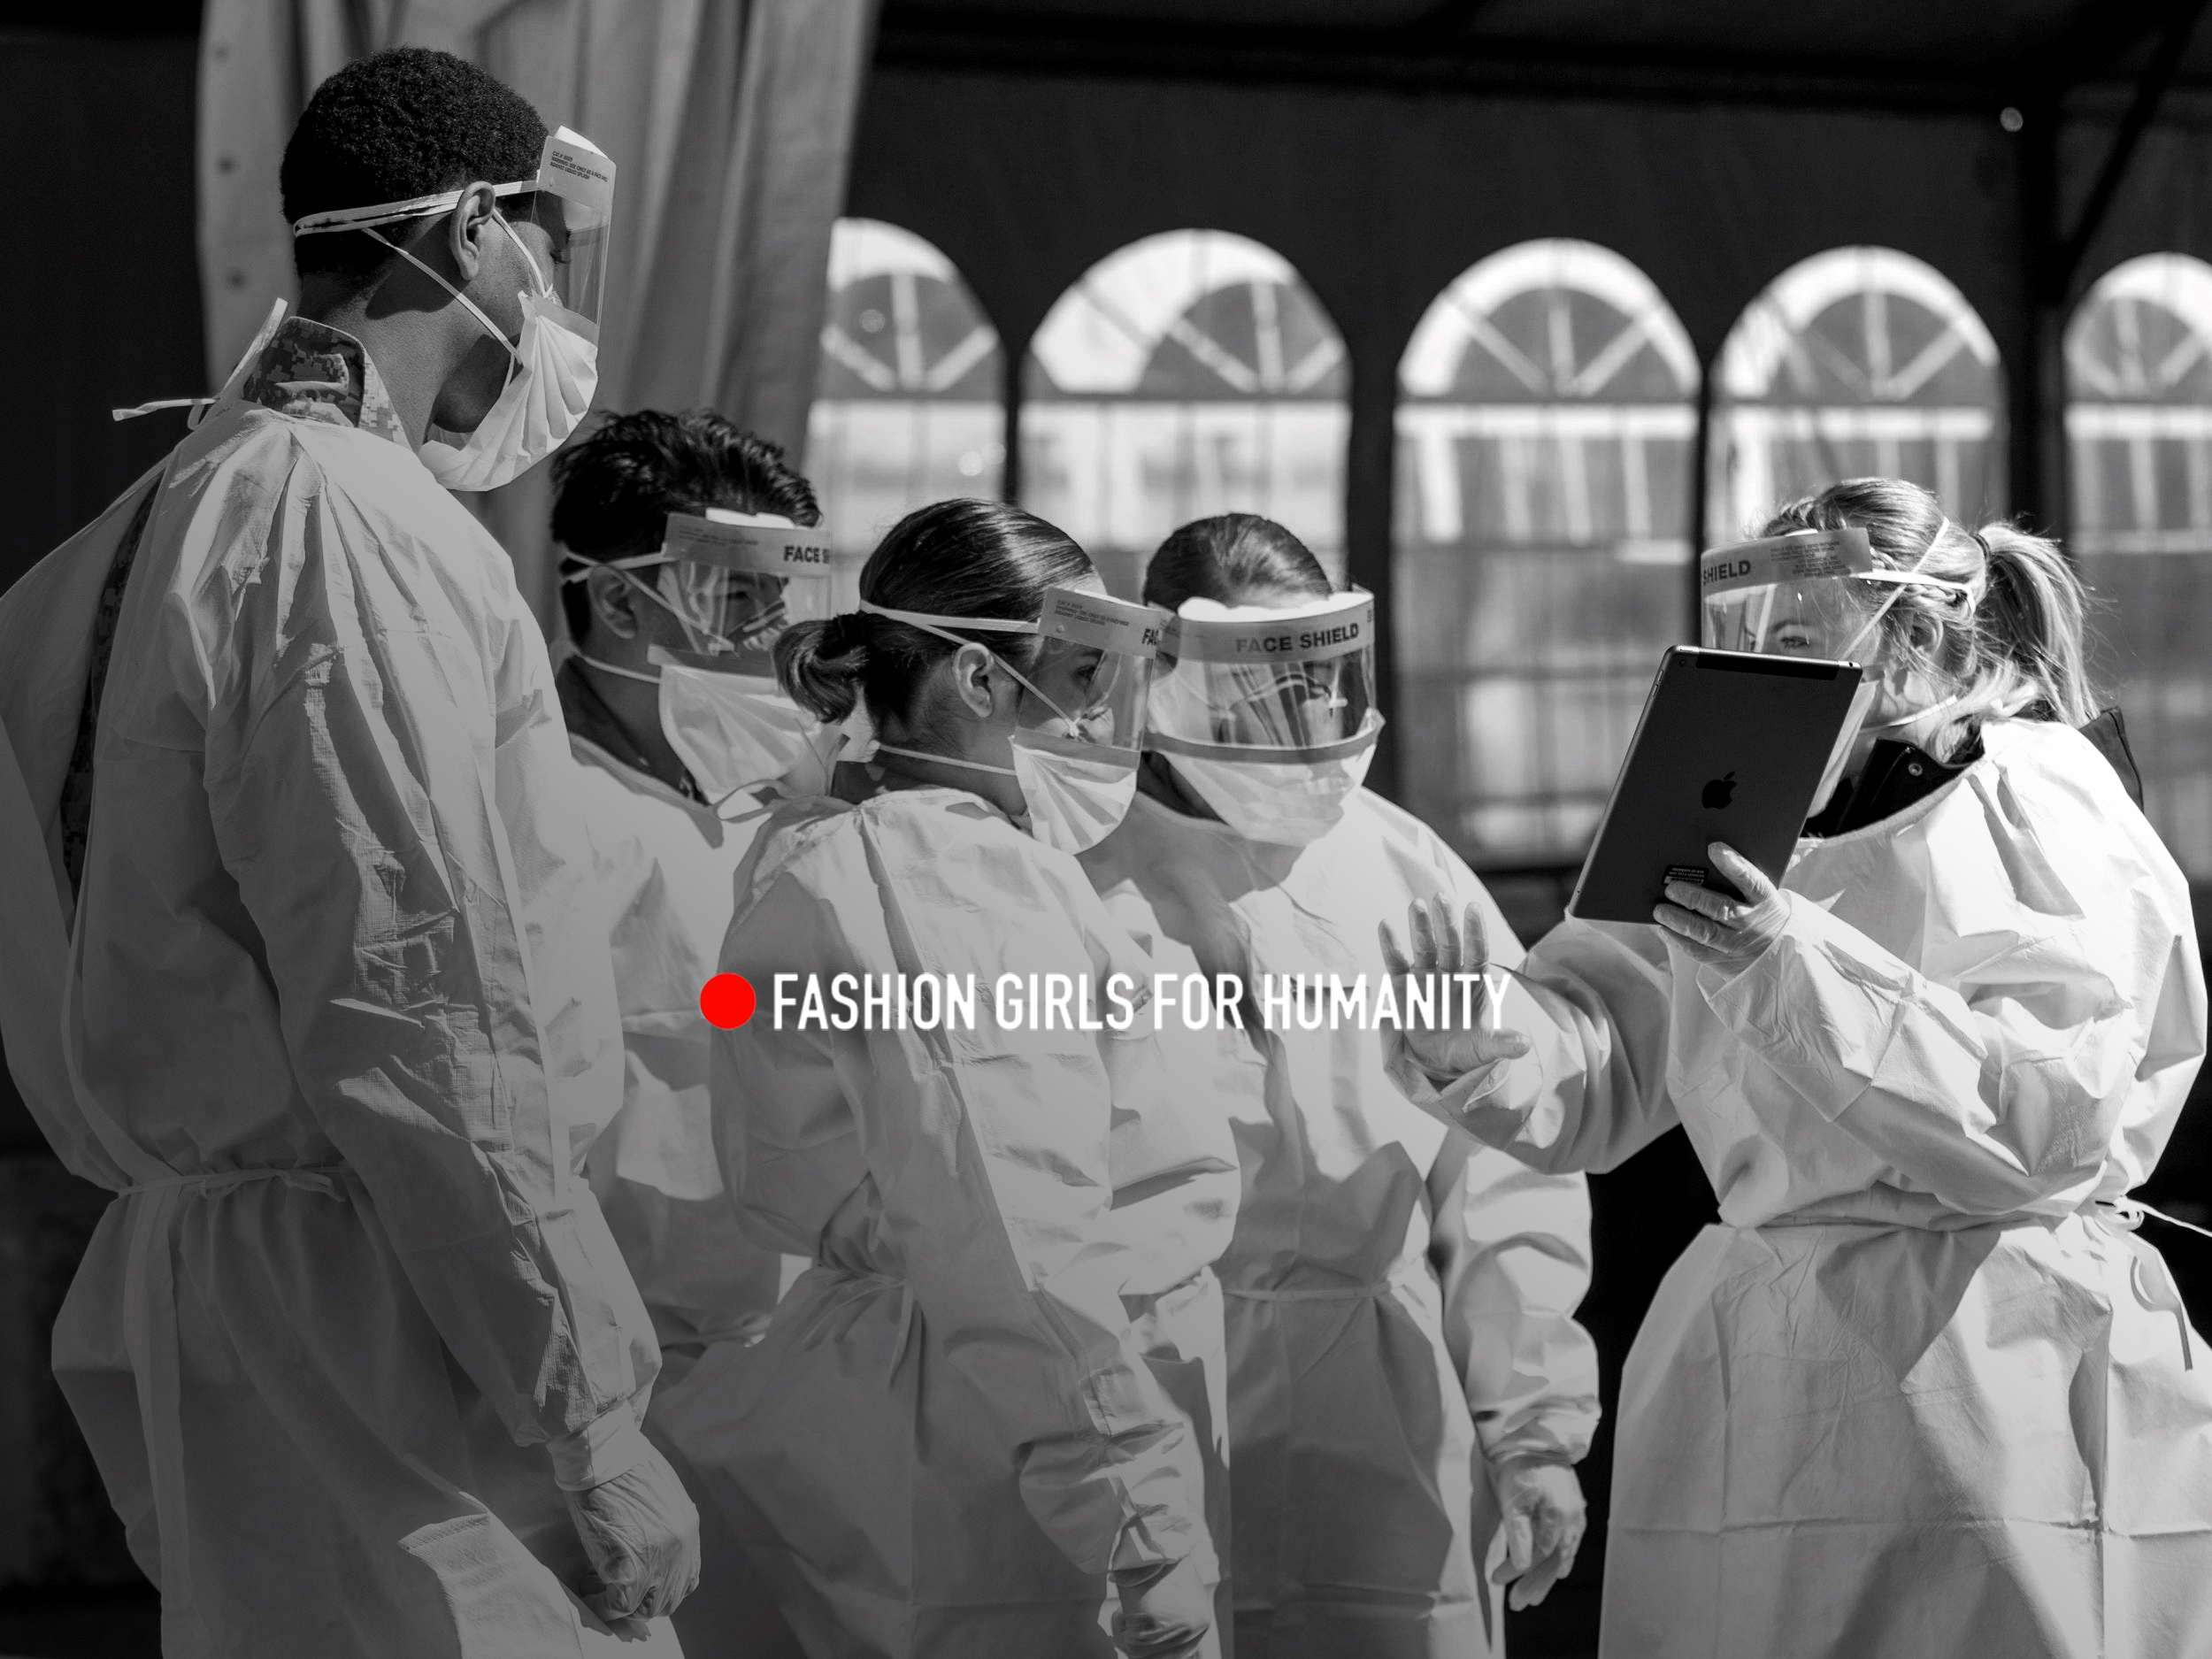 Fashion Girls For Humanity Raises Funds to Support Front-line Medical Workers